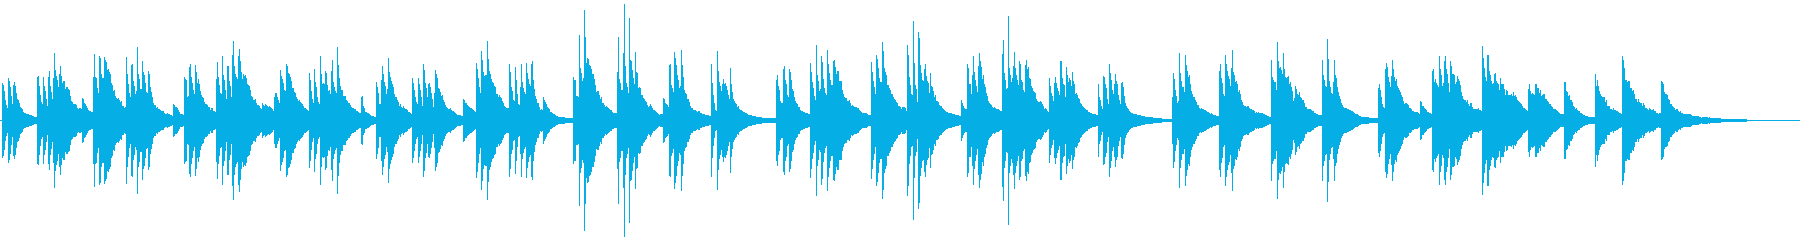 Piano ballad to play with a touch that looks like's reproduced waveform